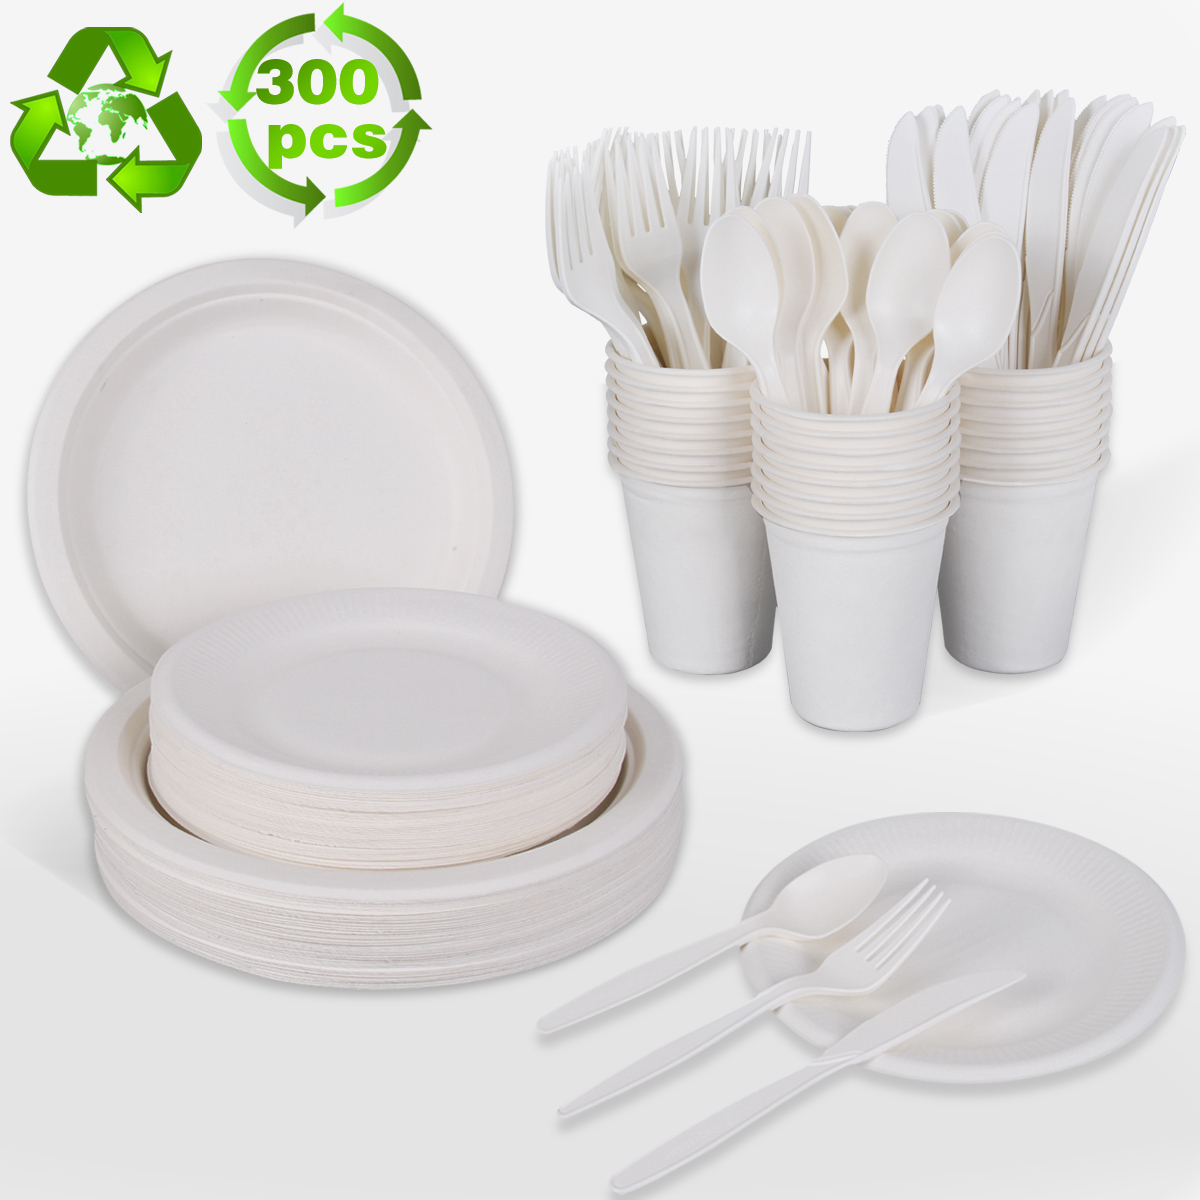 Huiran White Degradable Disposable Tableware Set Happy Birthday Party Decorations Kids Disposable Plates Cups Event Party Decor